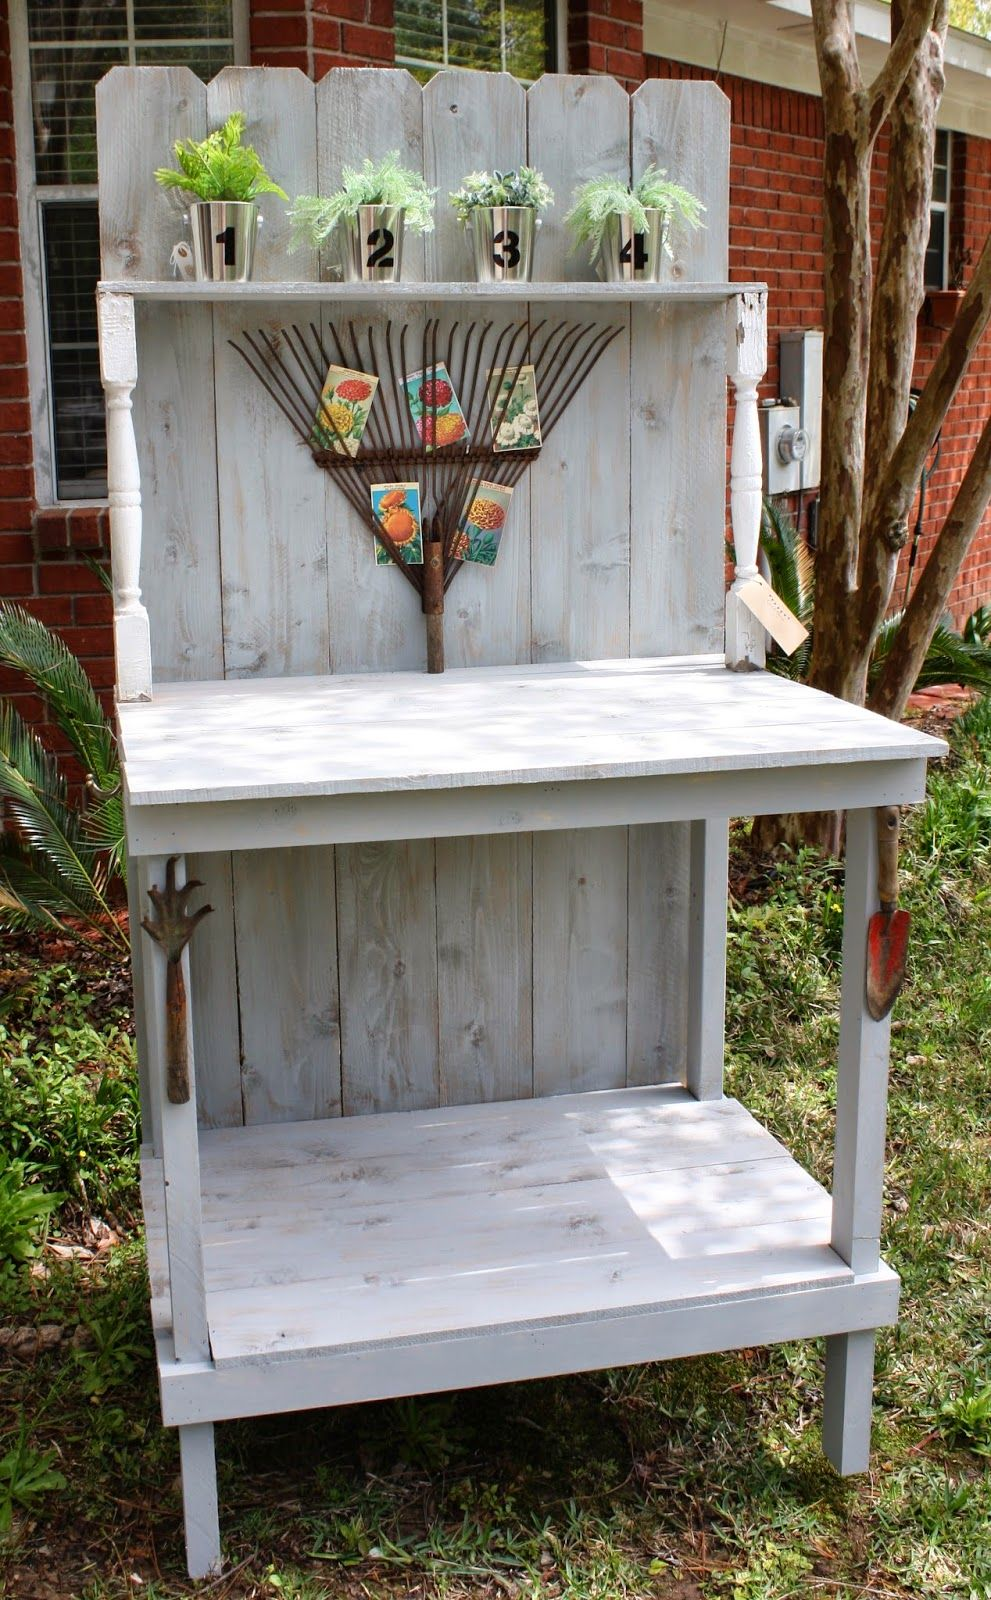 Diy potting bench coastal charm vintage repurposed for D i y garden bench designs